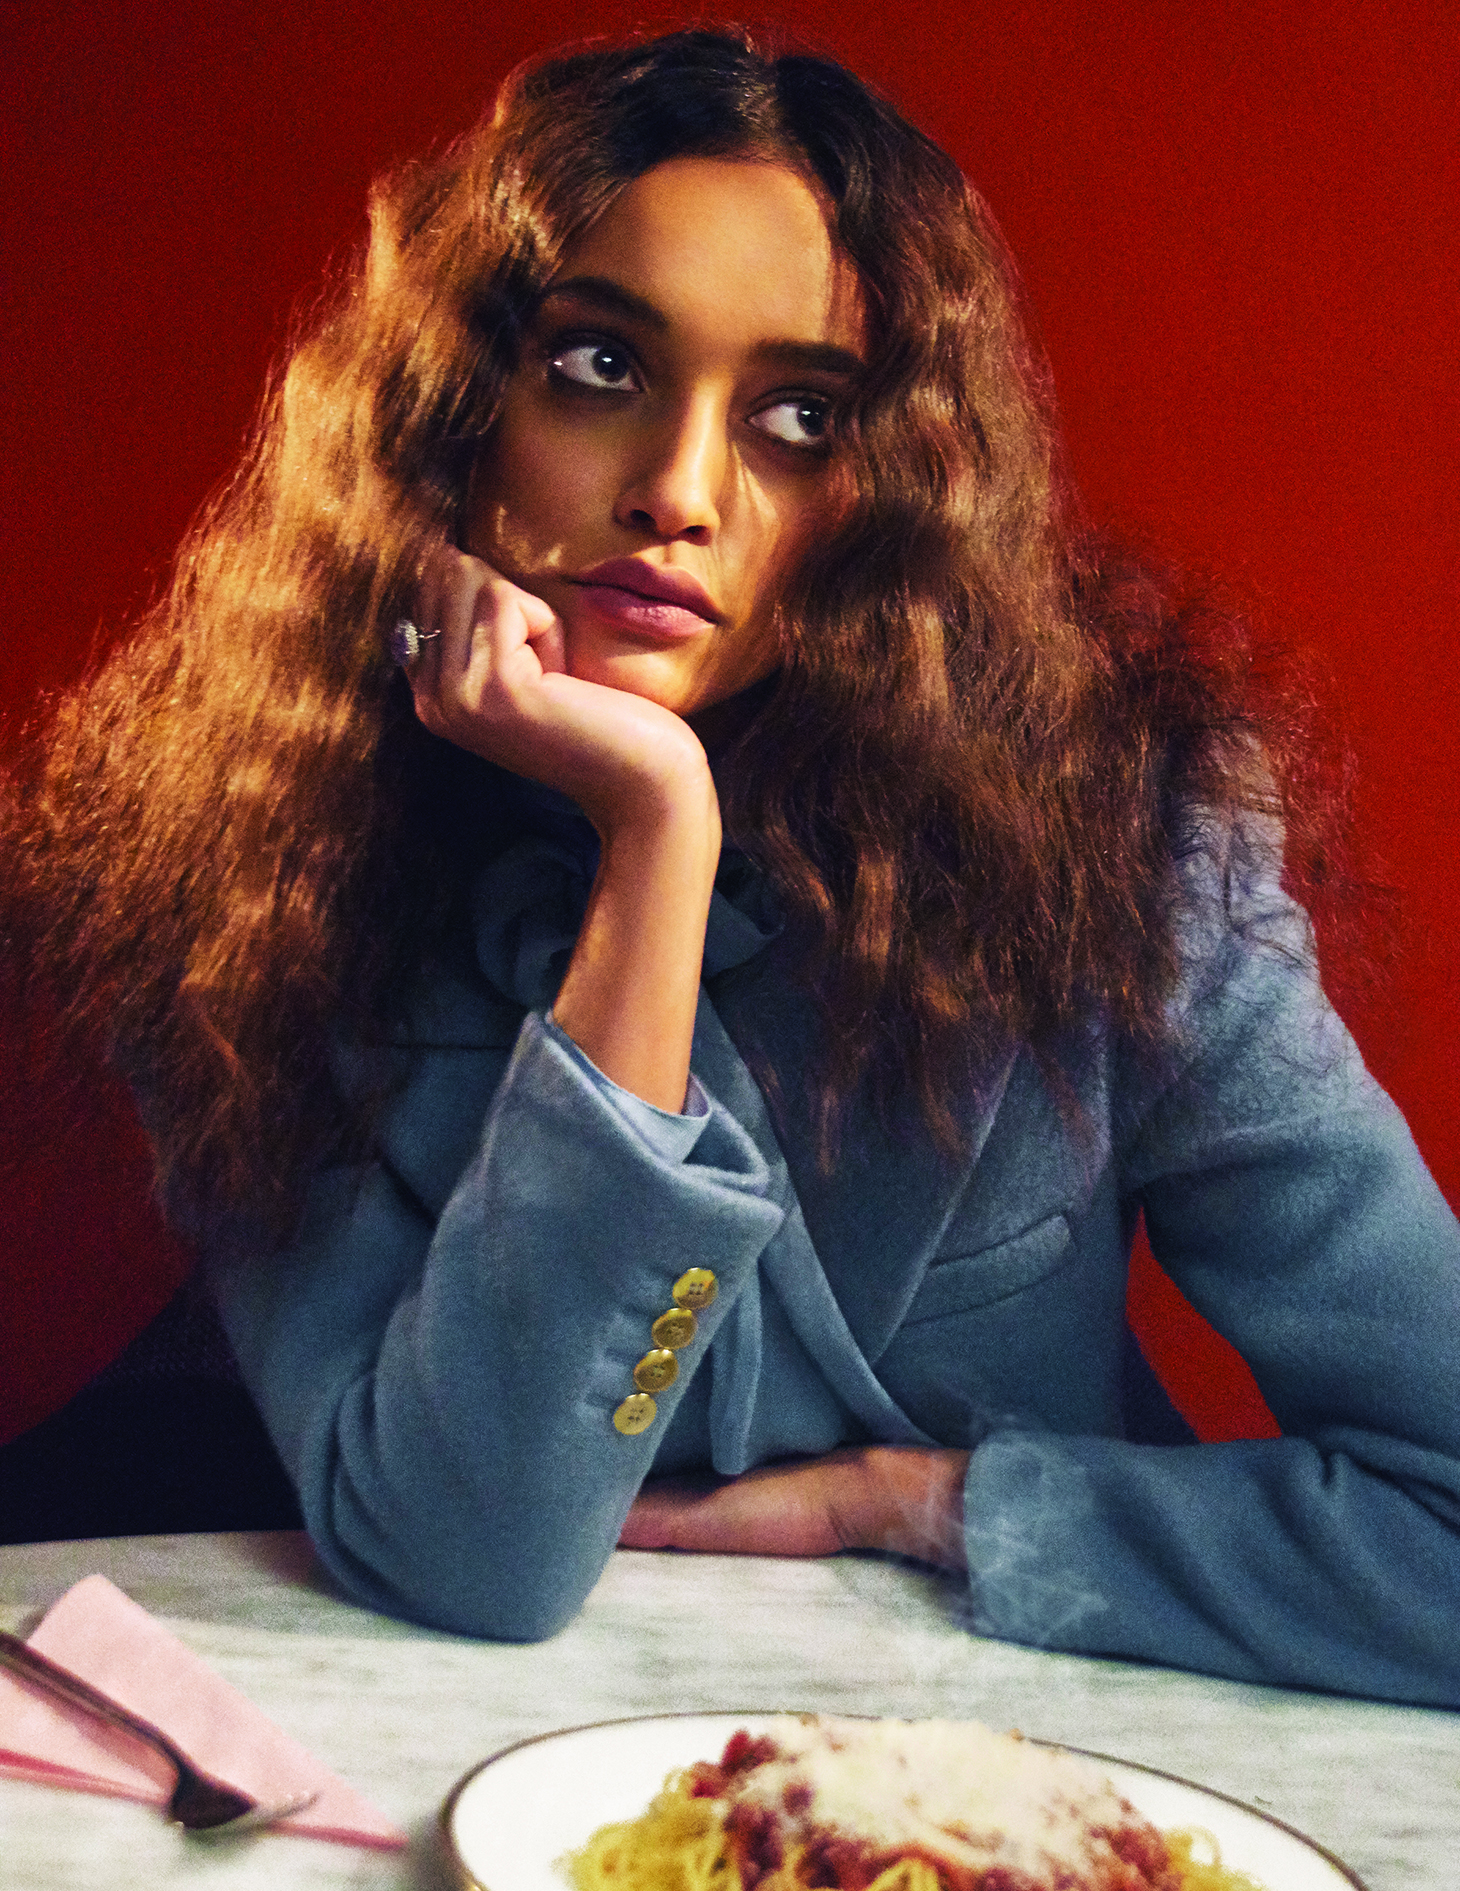 vogue portugal editorial hair grooming tony lundsrtoem long curly hair